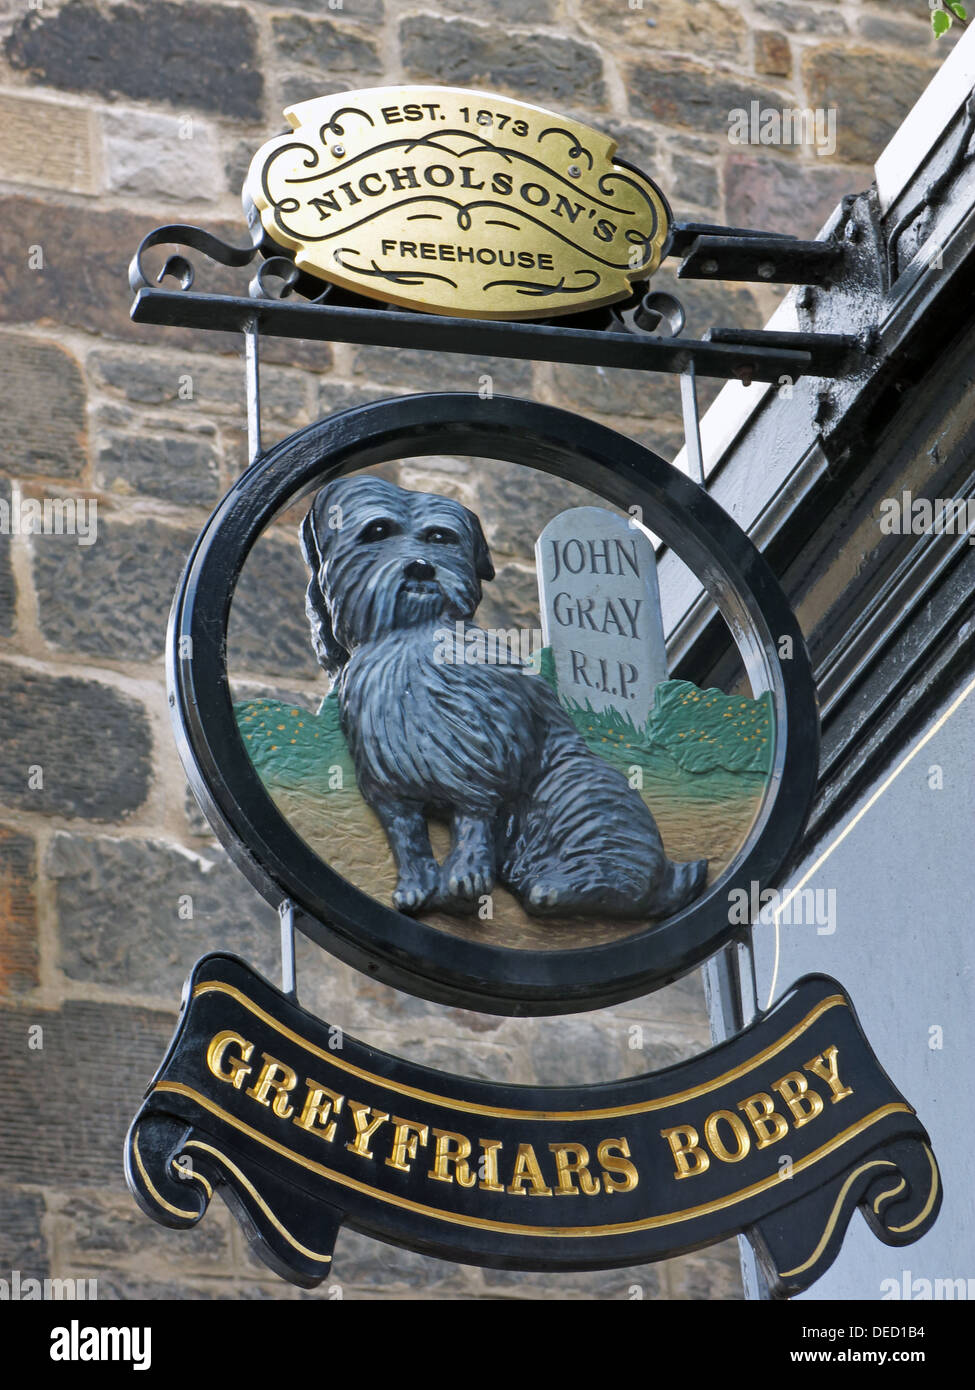 Greyfriars Bobby Pub sign, Old Town, Edinburgh Capital City, Scotland UK - Stock Image